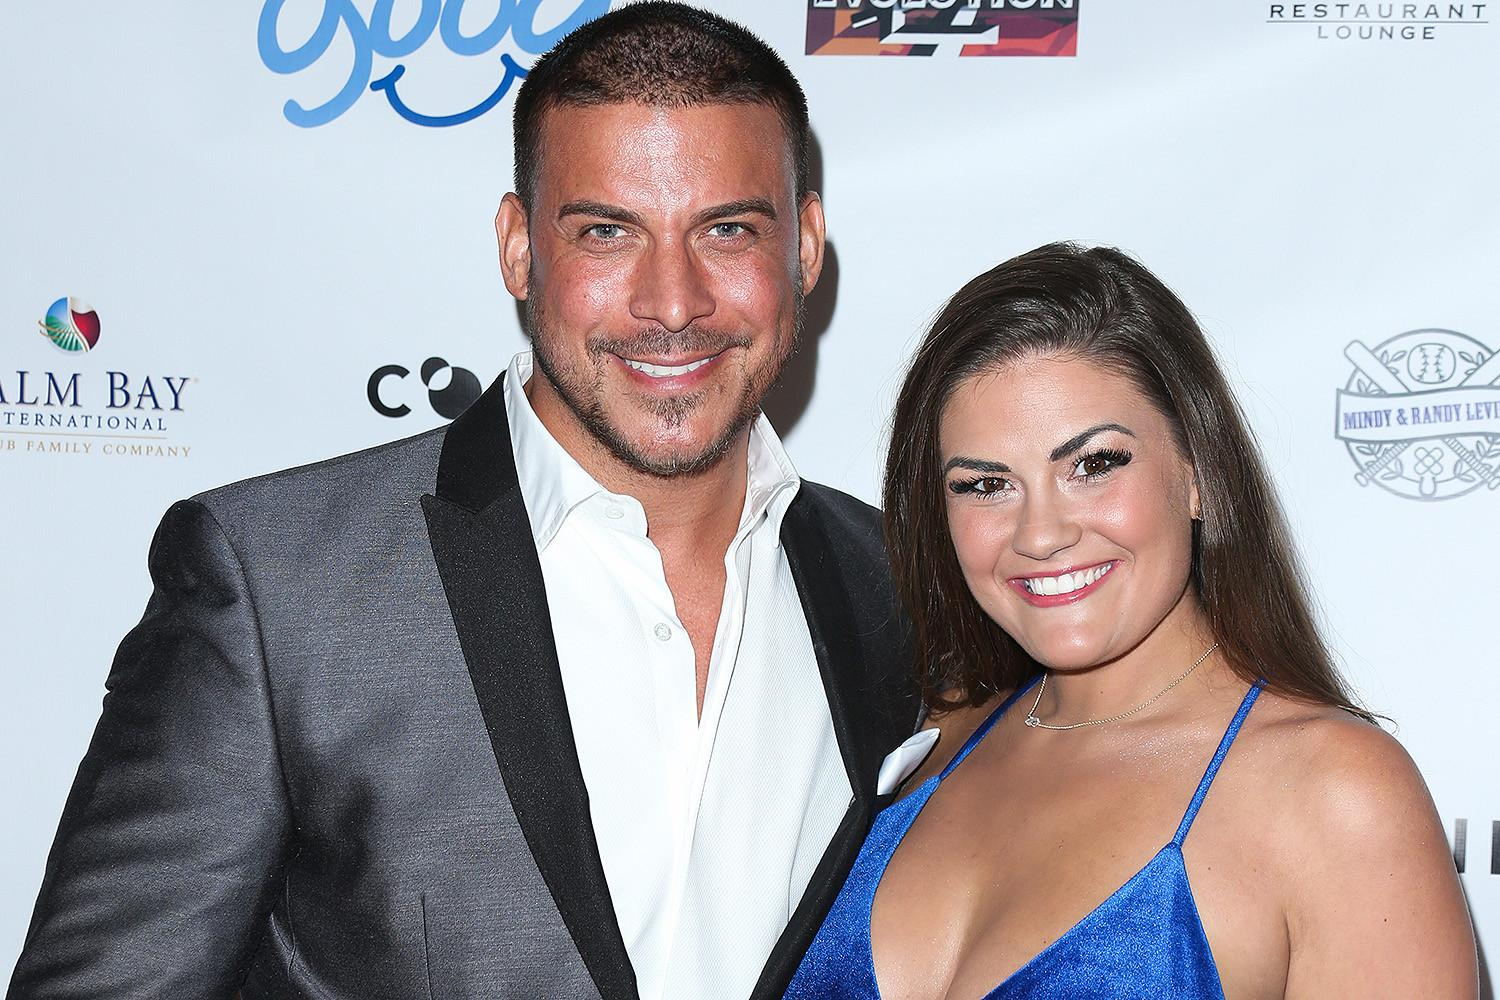 Brittany Cartwright Speaks After Jax Taylor Is Spotted Without His Wedding Ring -- Vanderpump Rules Star Claims They've Been 'Solid'